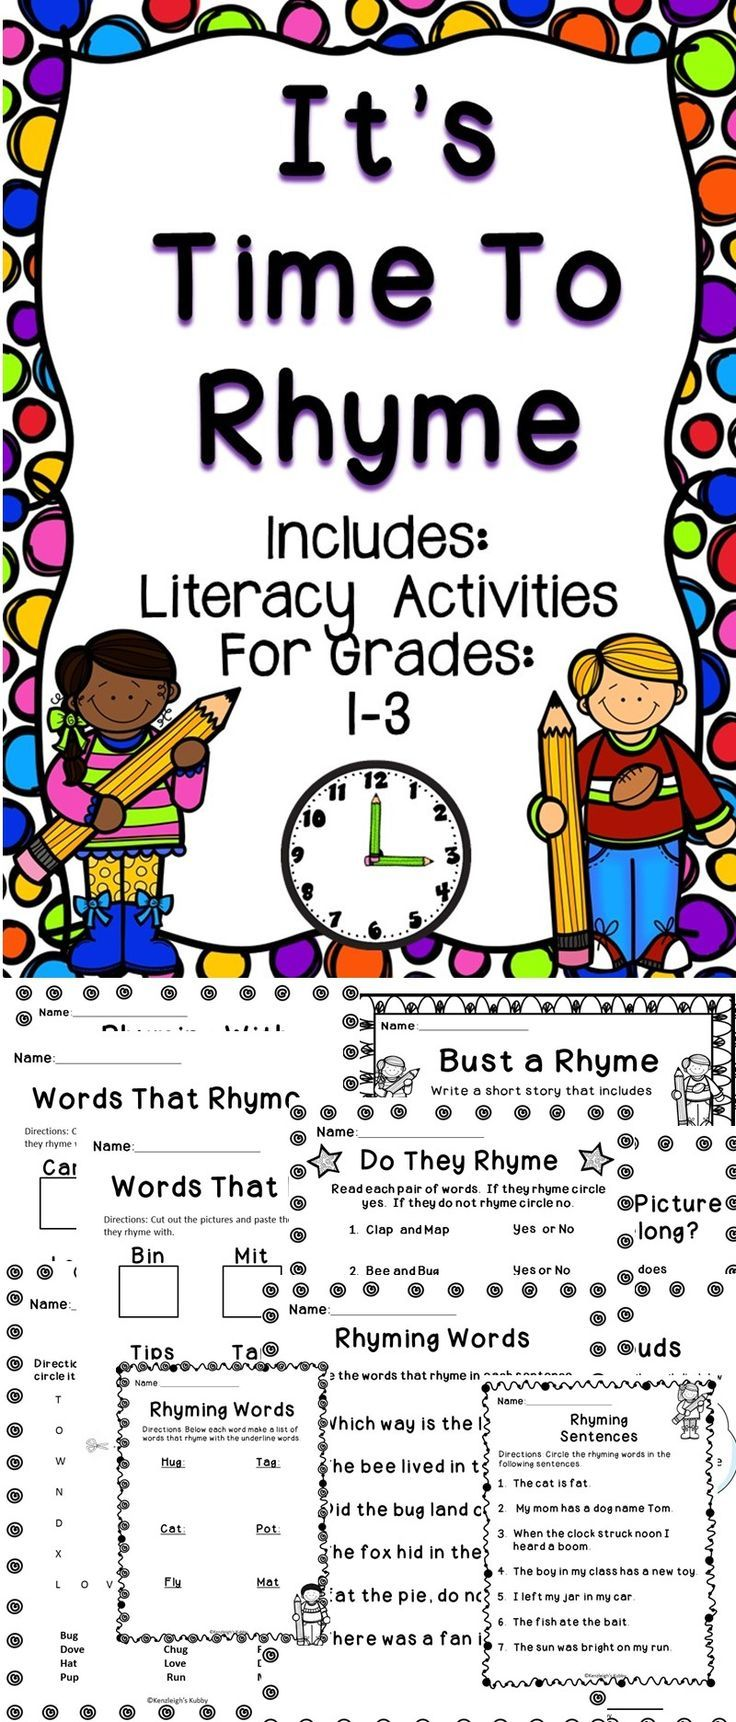 Worksheet Help Rhyming Words 1000 images about rhyme time on pinterest free rhymes word families and memory games